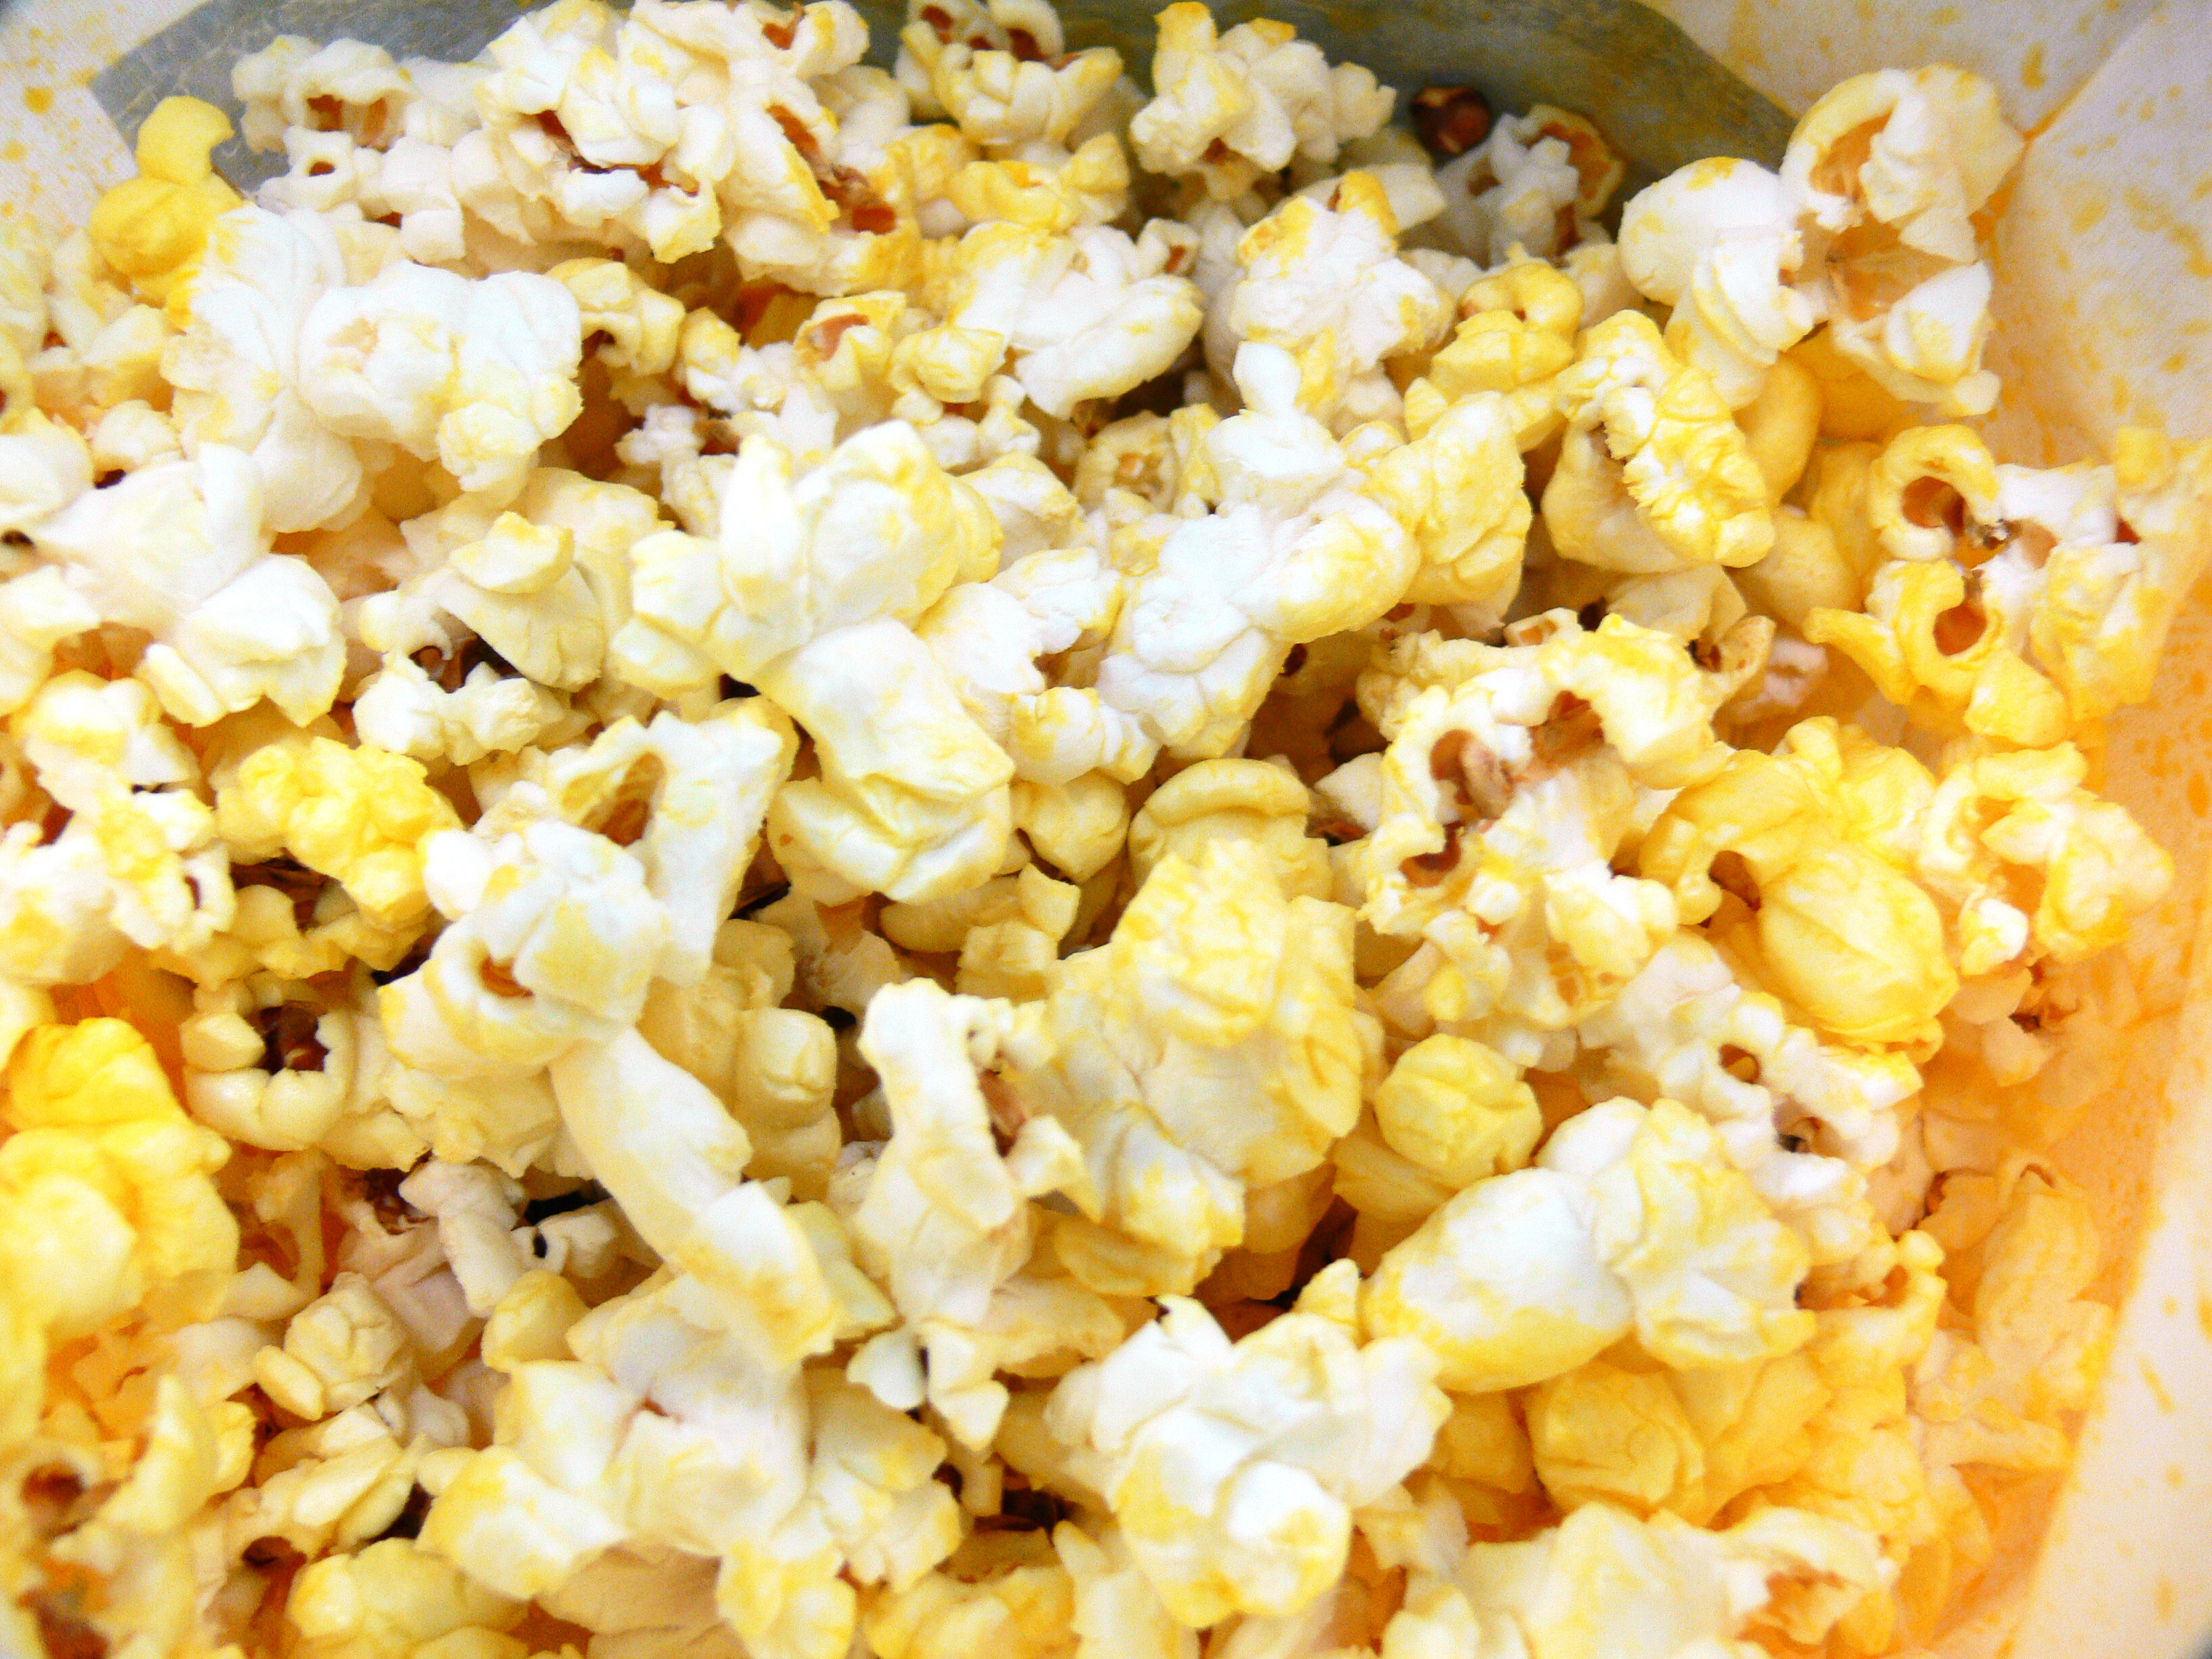 Bowl of butter popcorn